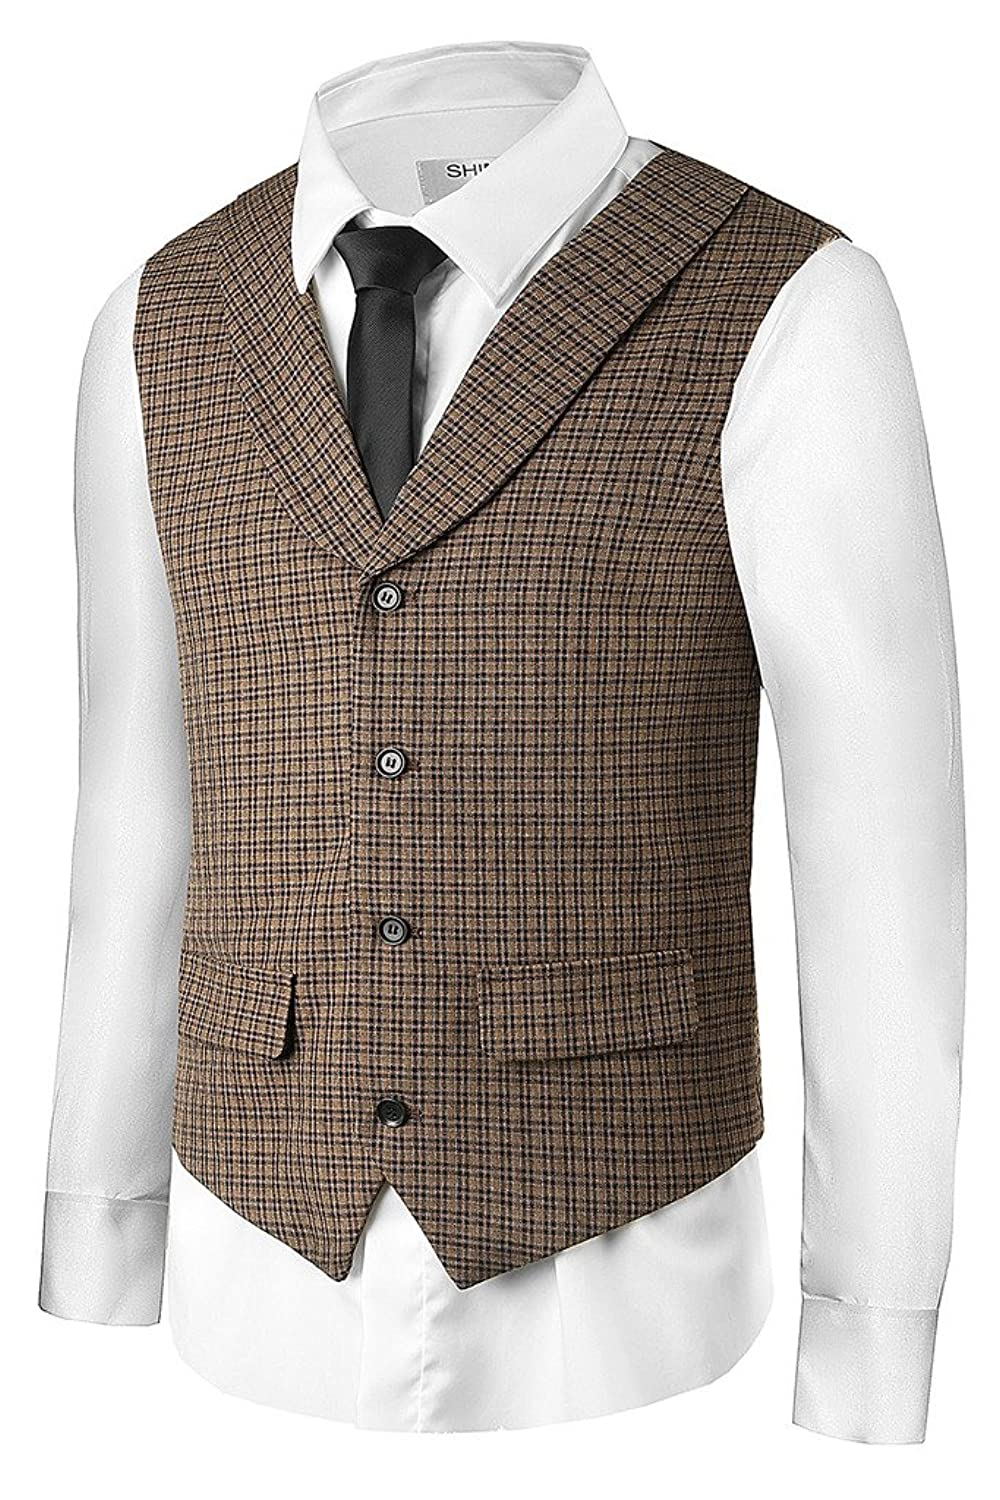 Men's Vintage Inspired Vests Hanayome Men Plaid Vest Suit Jacket Waistcoat Brown Business Shawl Collar Vests VS28 $28.50 AT vintagedancer.com